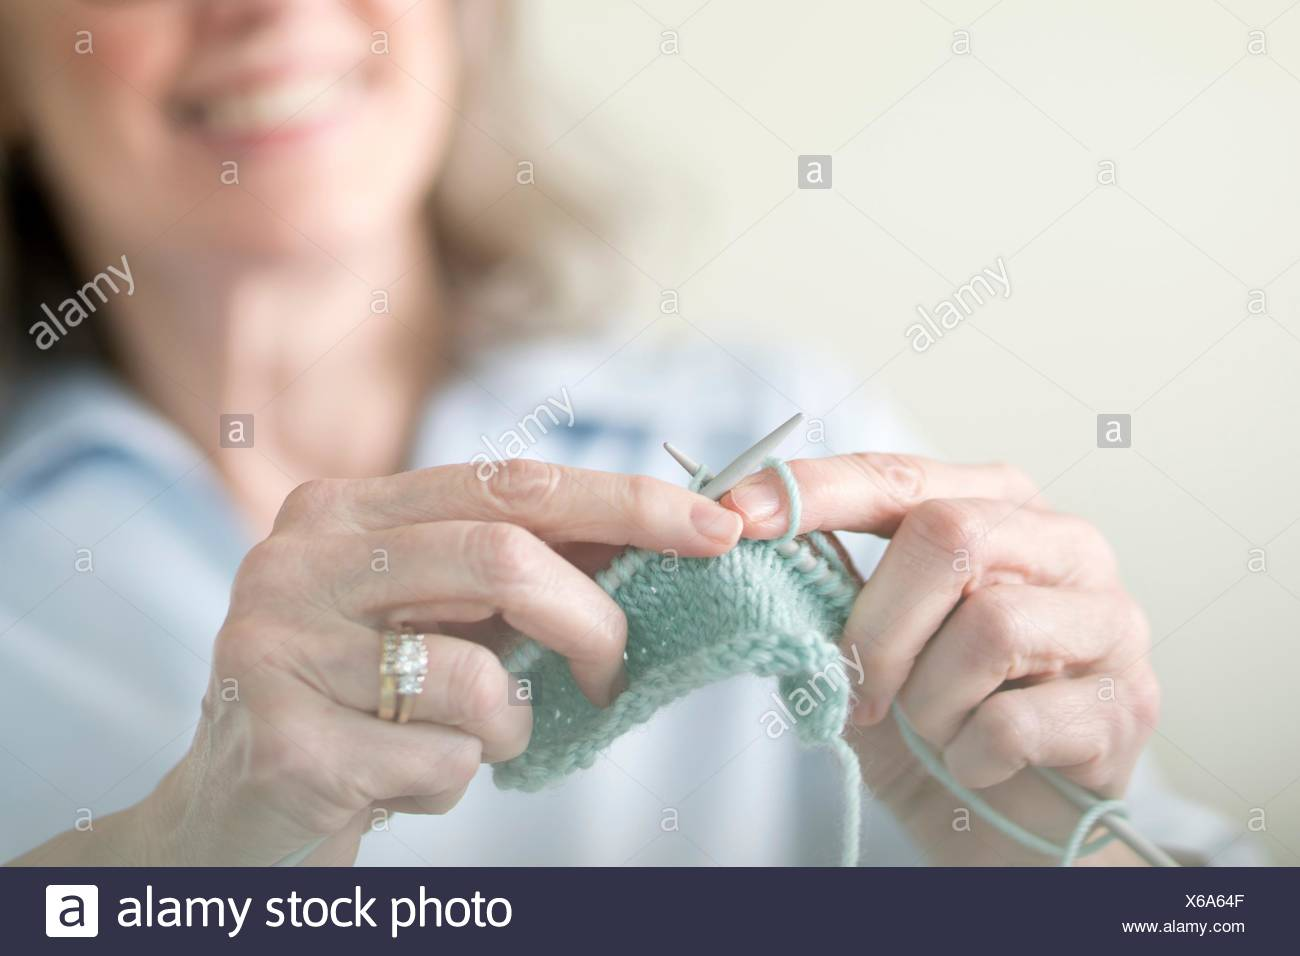 Senior woman knitting. - Stock Image